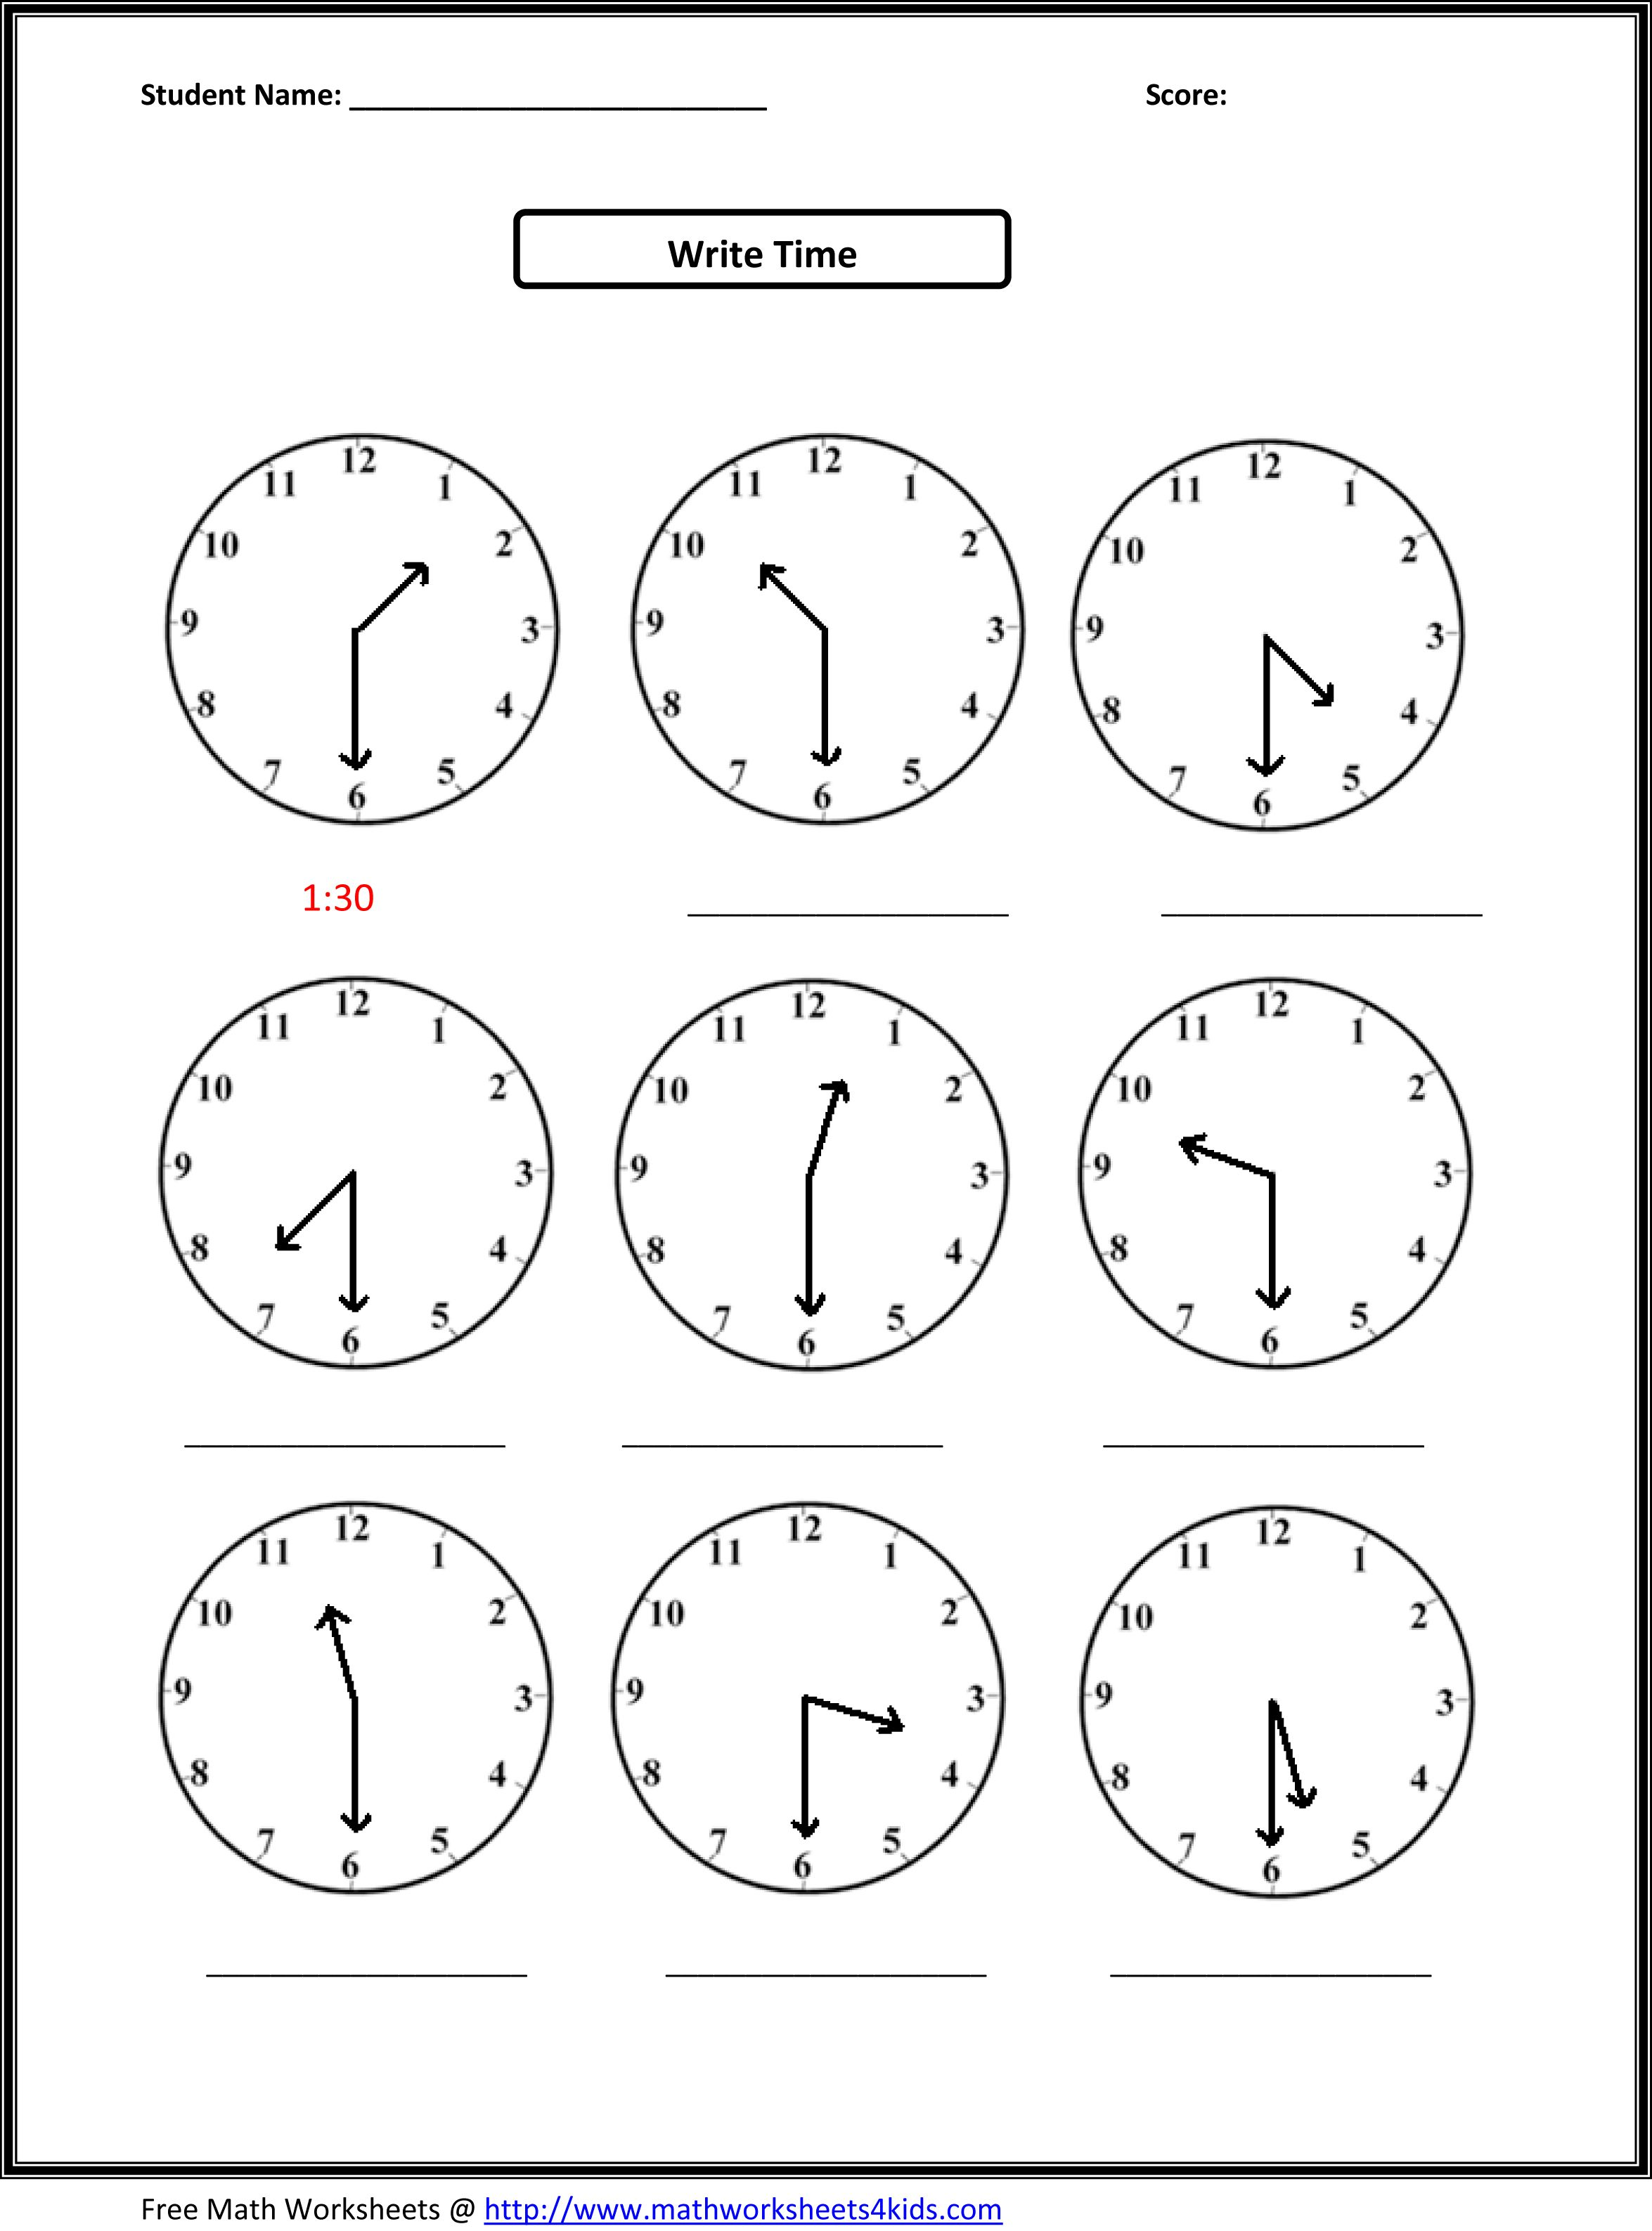 Proatmealus  Ravishing Worksheet On Time For Grade   Reocurent With Fascinating Free Printable Telling Time Worksheets Nd Grade  Reocurent With Attractive English To Metric Conversion Worksheet Also Pulley Worksheet In Addition Add Subtract Decimals Worksheet And Tax And Interest Deduction Worksheet As Well As Verb Worksheets Th Grade Additionally Second Grade Sight Words Worksheets From Reocurentcom With Proatmealus  Fascinating Worksheet On Time For Grade   Reocurent With Attractive Free Printable Telling Time Worksheets Nd Grade  Reocurent And Ravishing English To Metric Conversion Worksheet Also Pulley Worksheet In Addition Add Subtract Decimals Worksheet From Reocurentcom